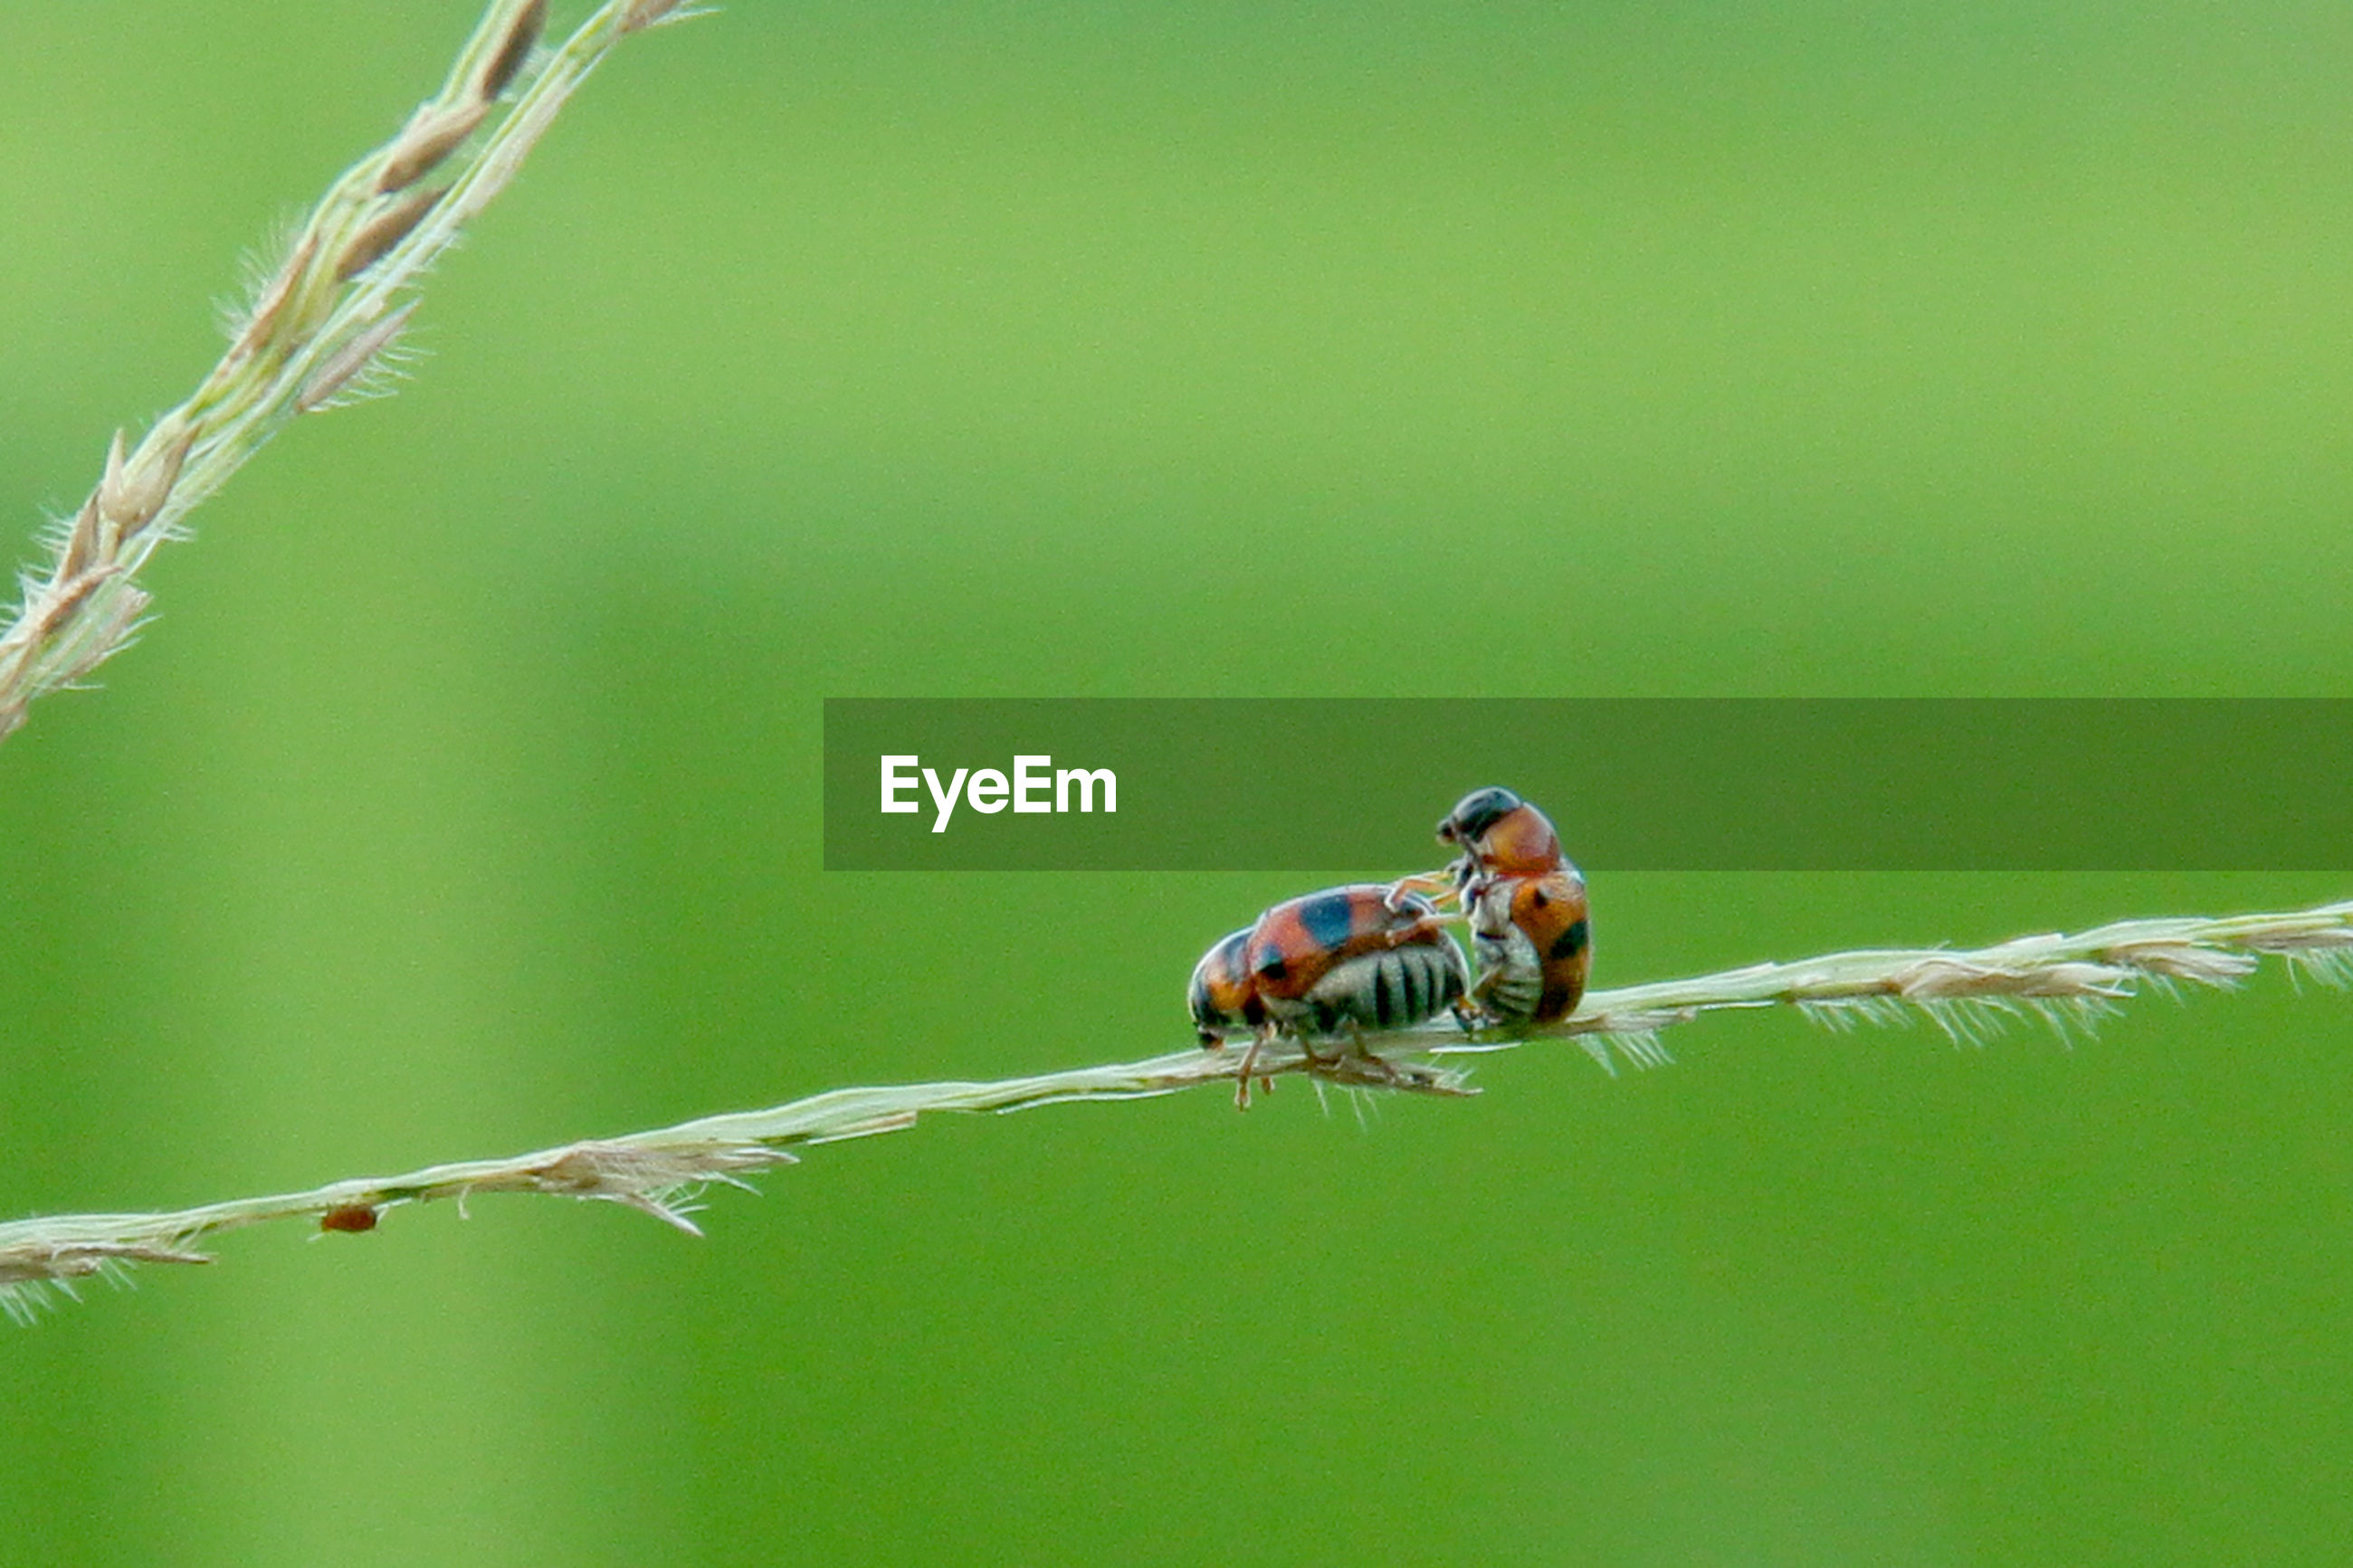 Making Love Macro Nature Photography Eyeem Use Selective Focus In For Dummies Want To Buy This Photo